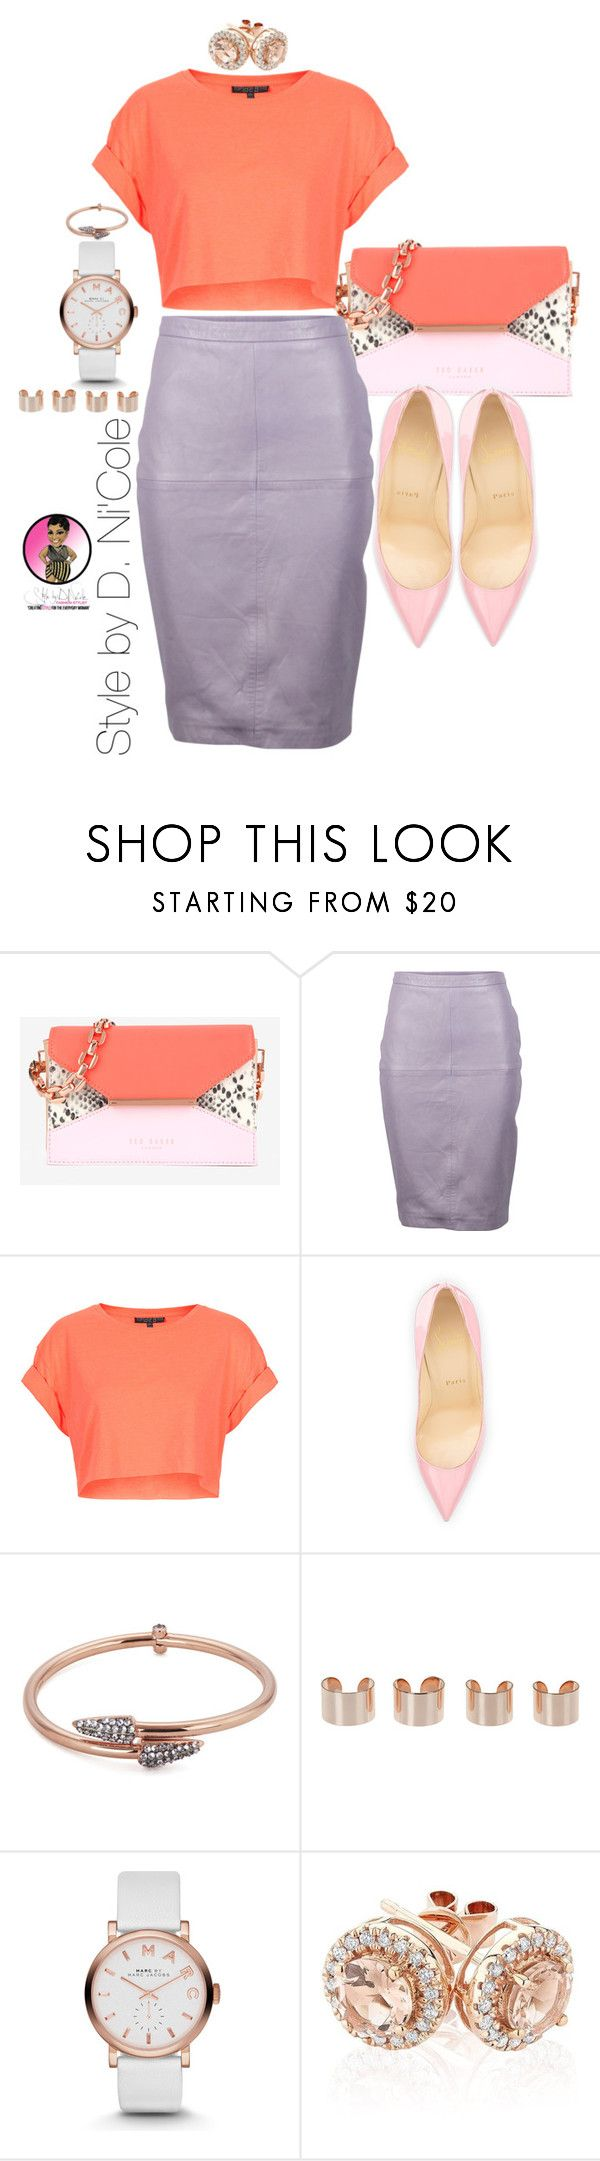 """Untitled #2389"" by stylebydnicole ❤ liked on Polyvore featuring Ted Baker, VIPARO, Topshop, Christian Louboutin, Katie Rowland, Maison Margiela, Marc by Marc Jacobs and Reeds Jewelers"